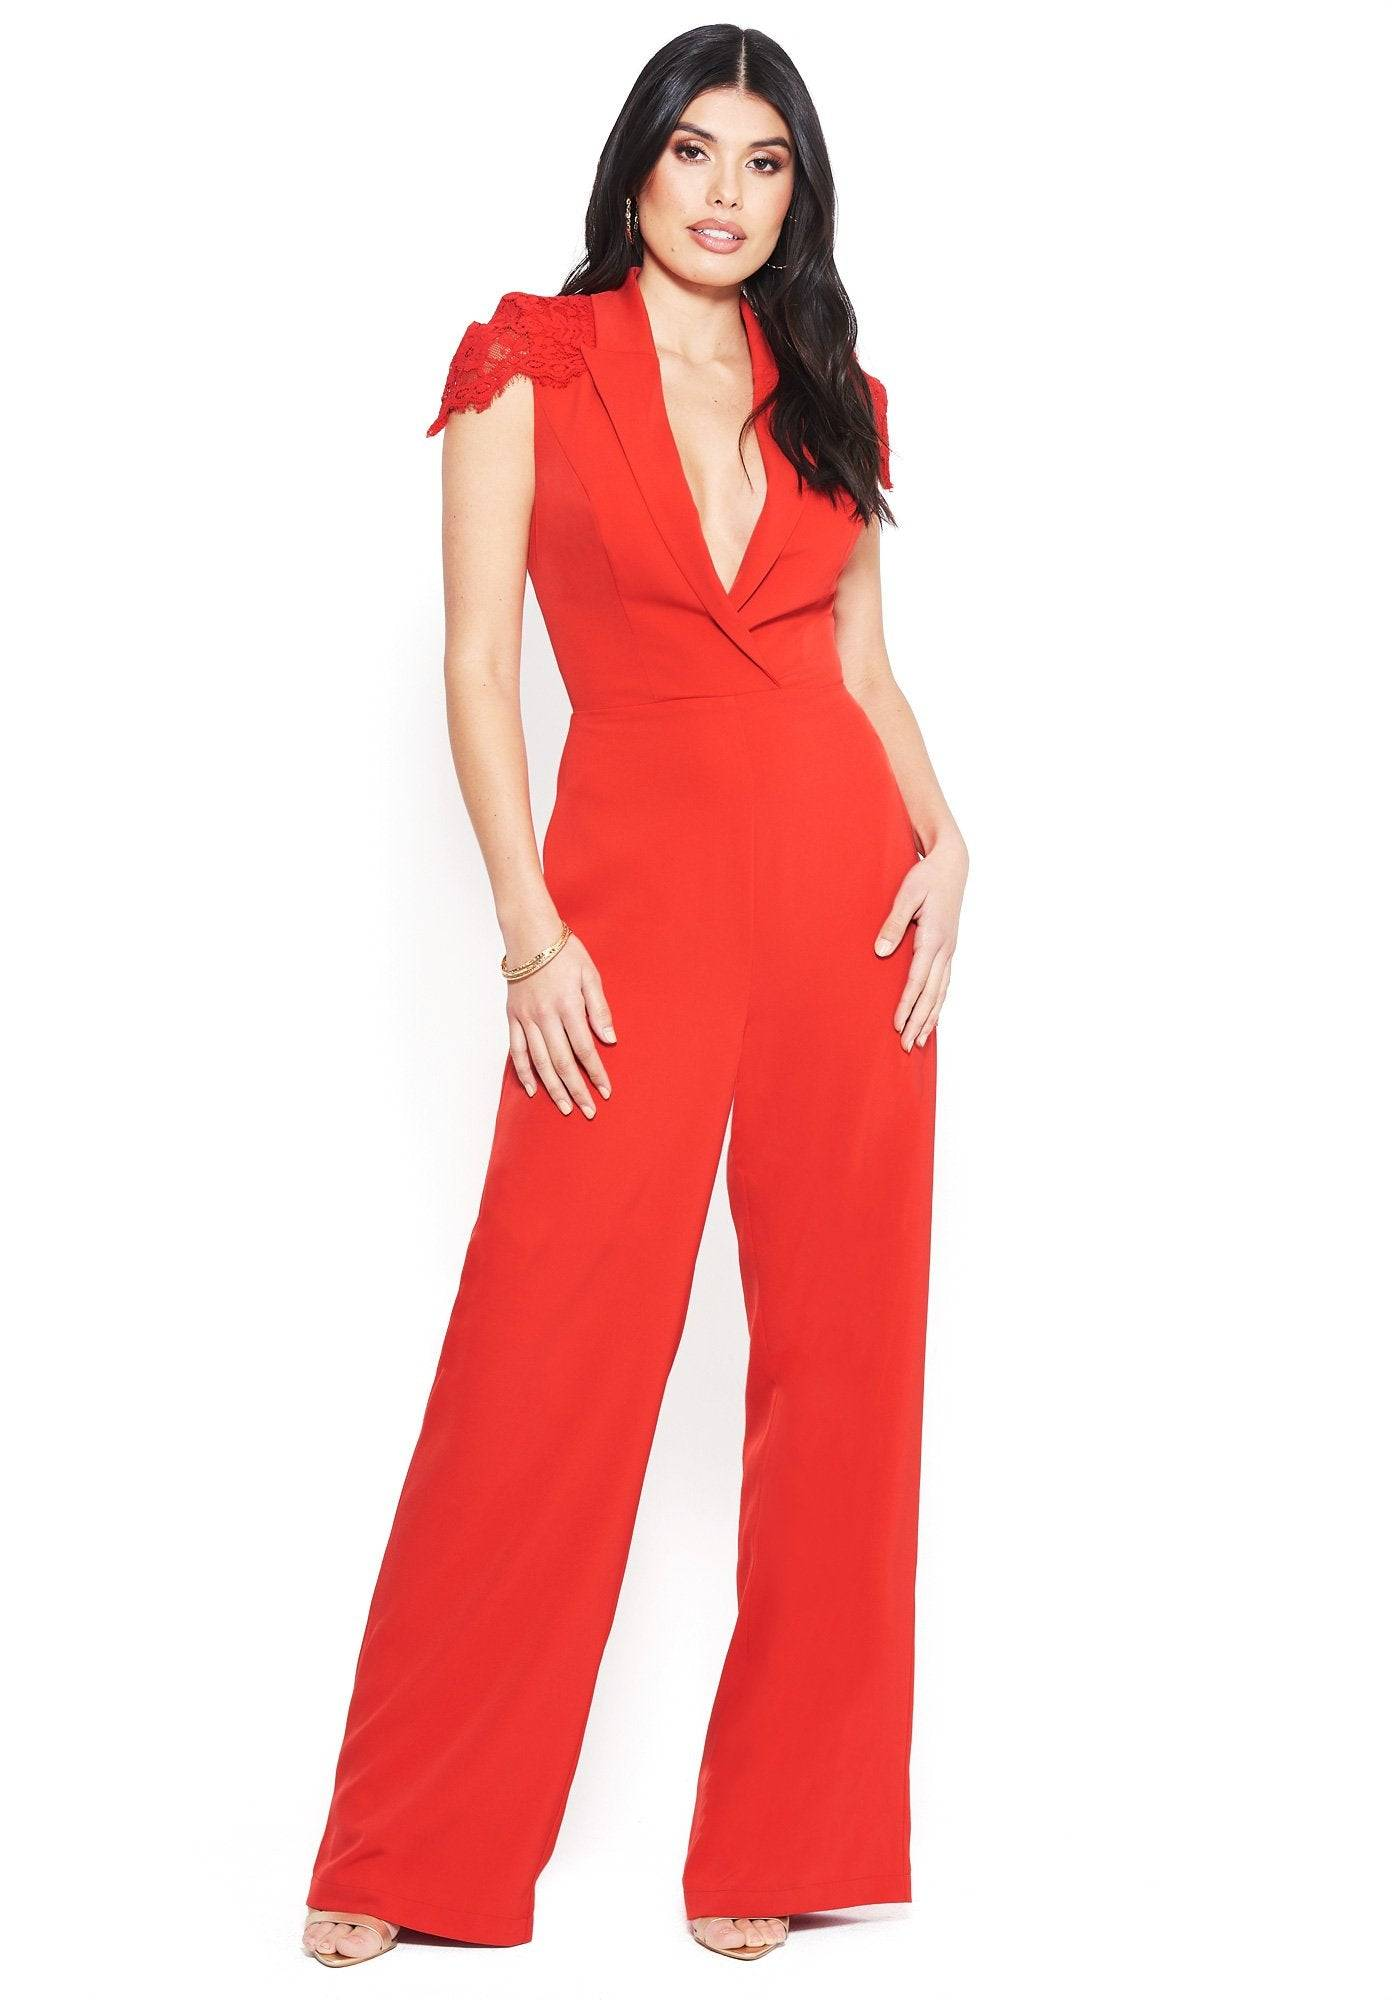 Bebe Women's Lace Capelet Jumpsuit, Size 8 in TRUE RED